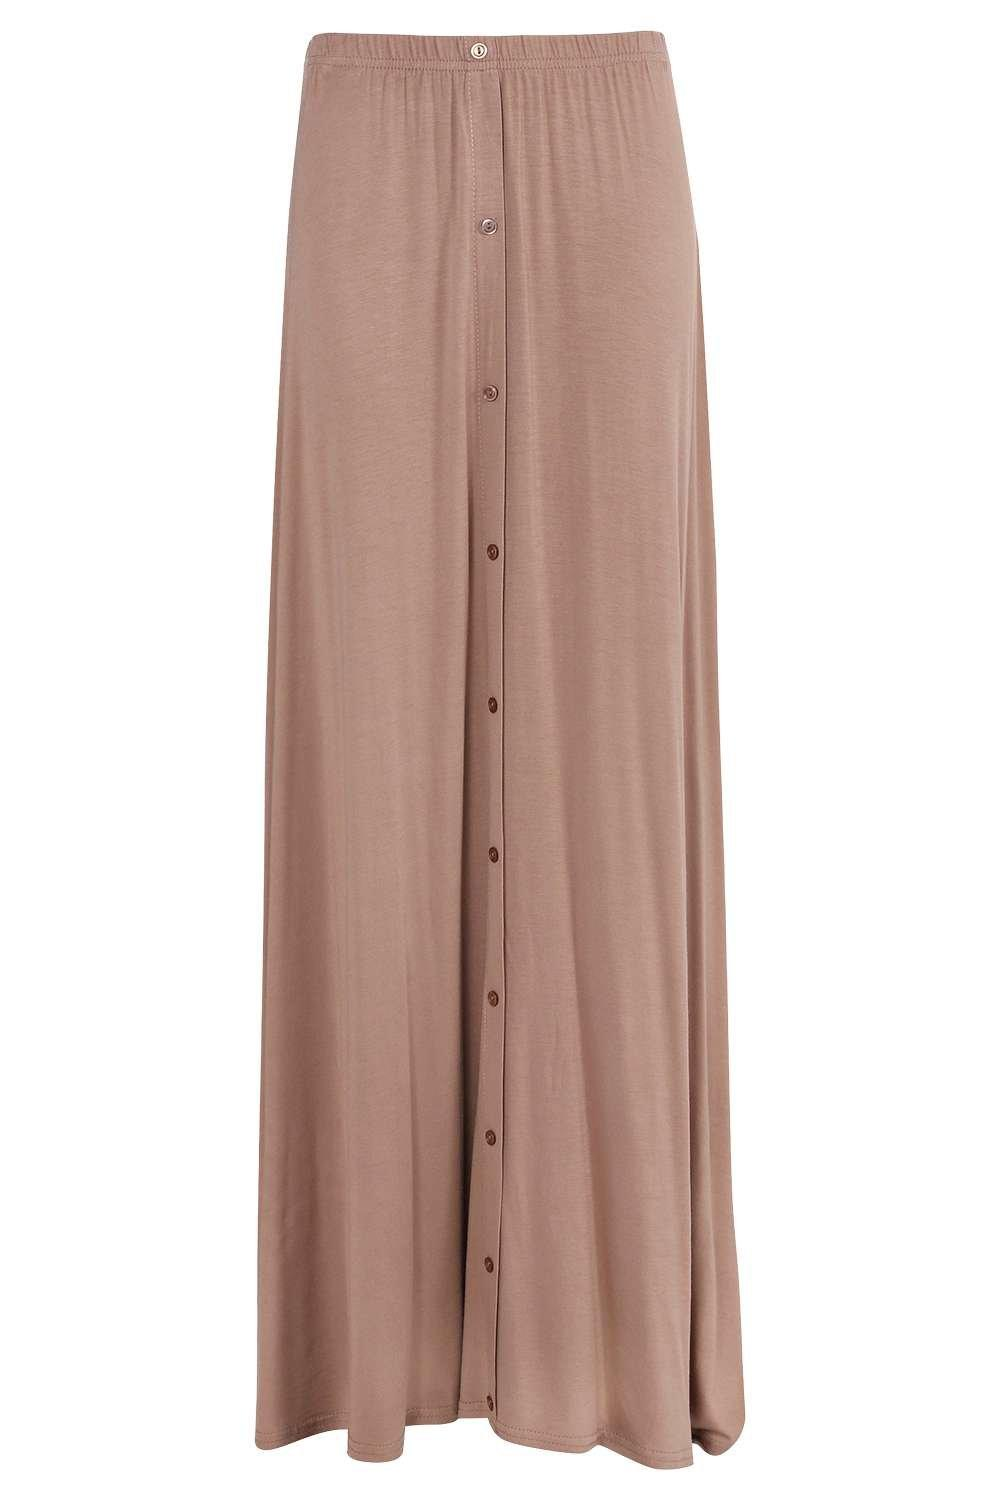 boohoo womens ruby 90 s grunge style button front maxi